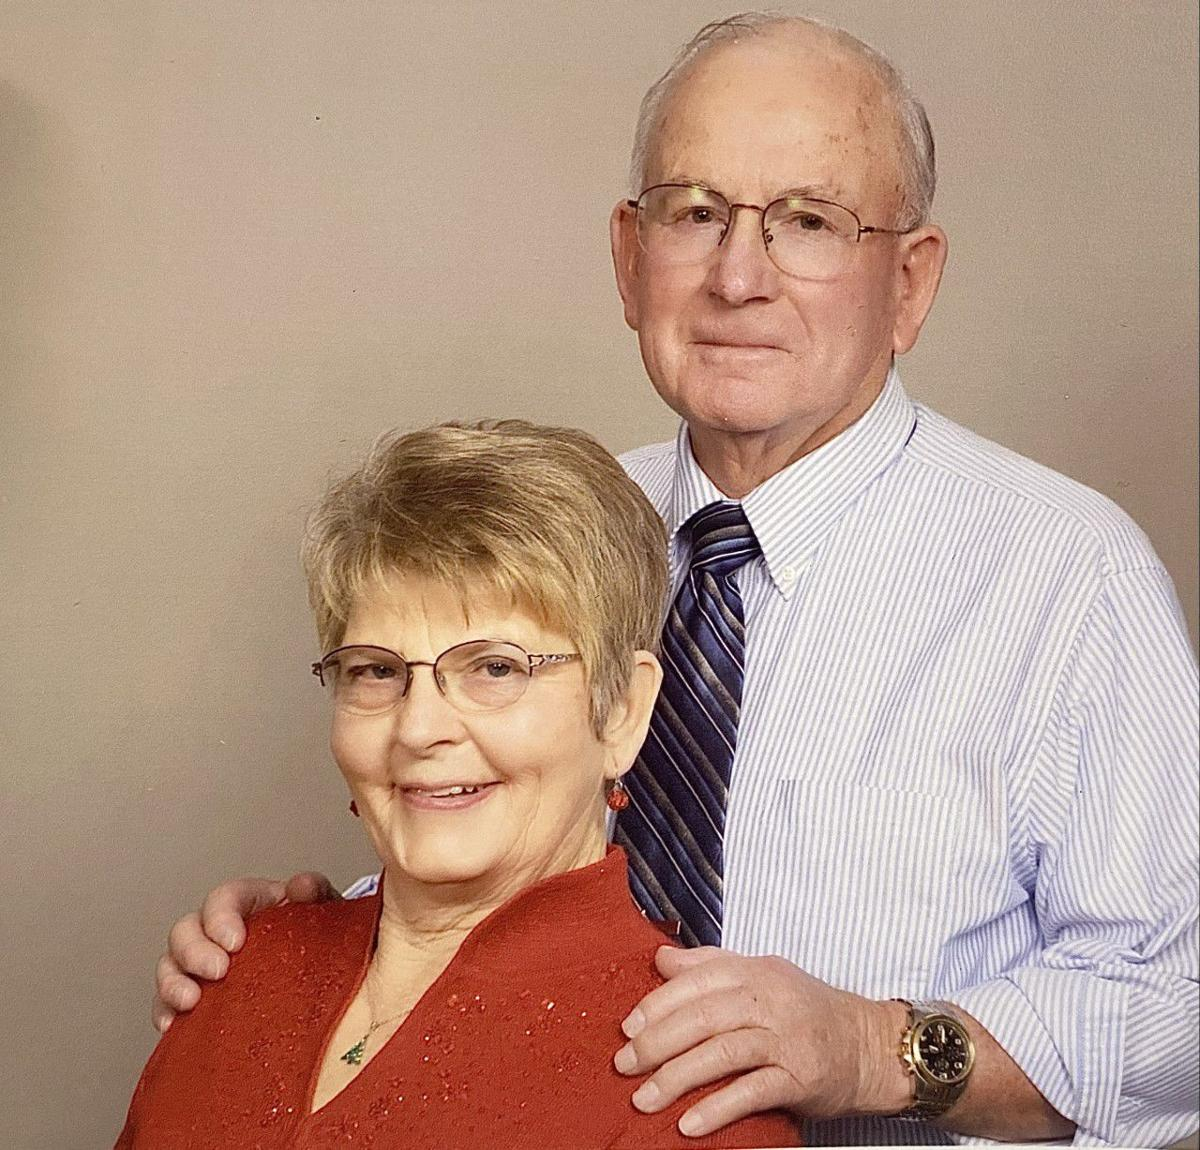 Cooks celebrate 60 years of marriage